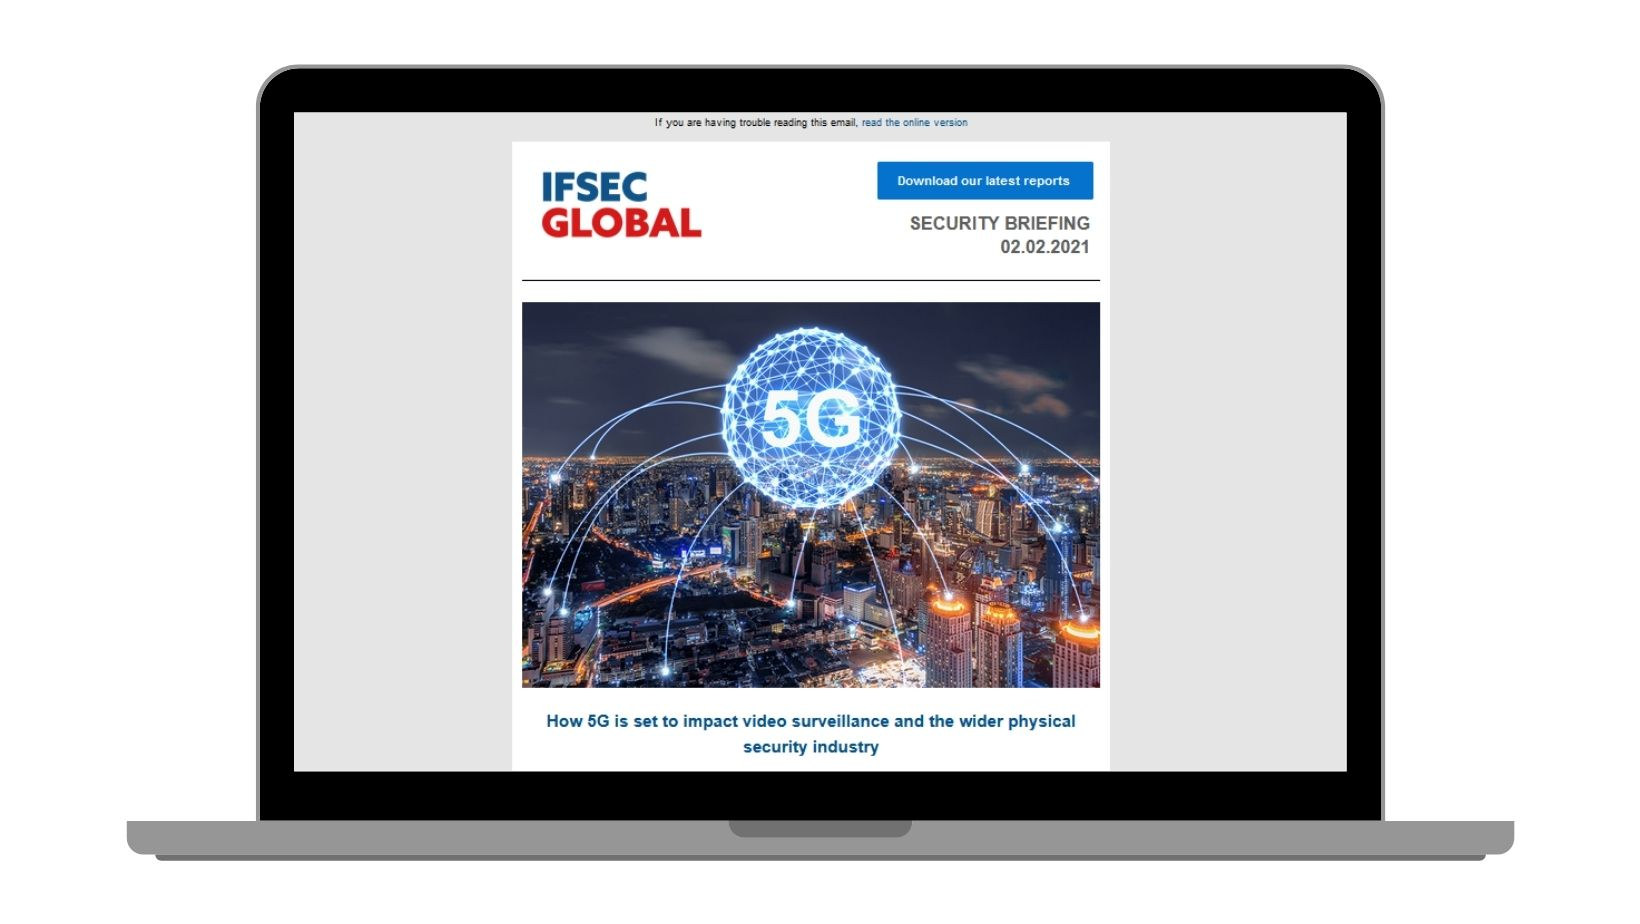 IFSEC Global Security Briefing